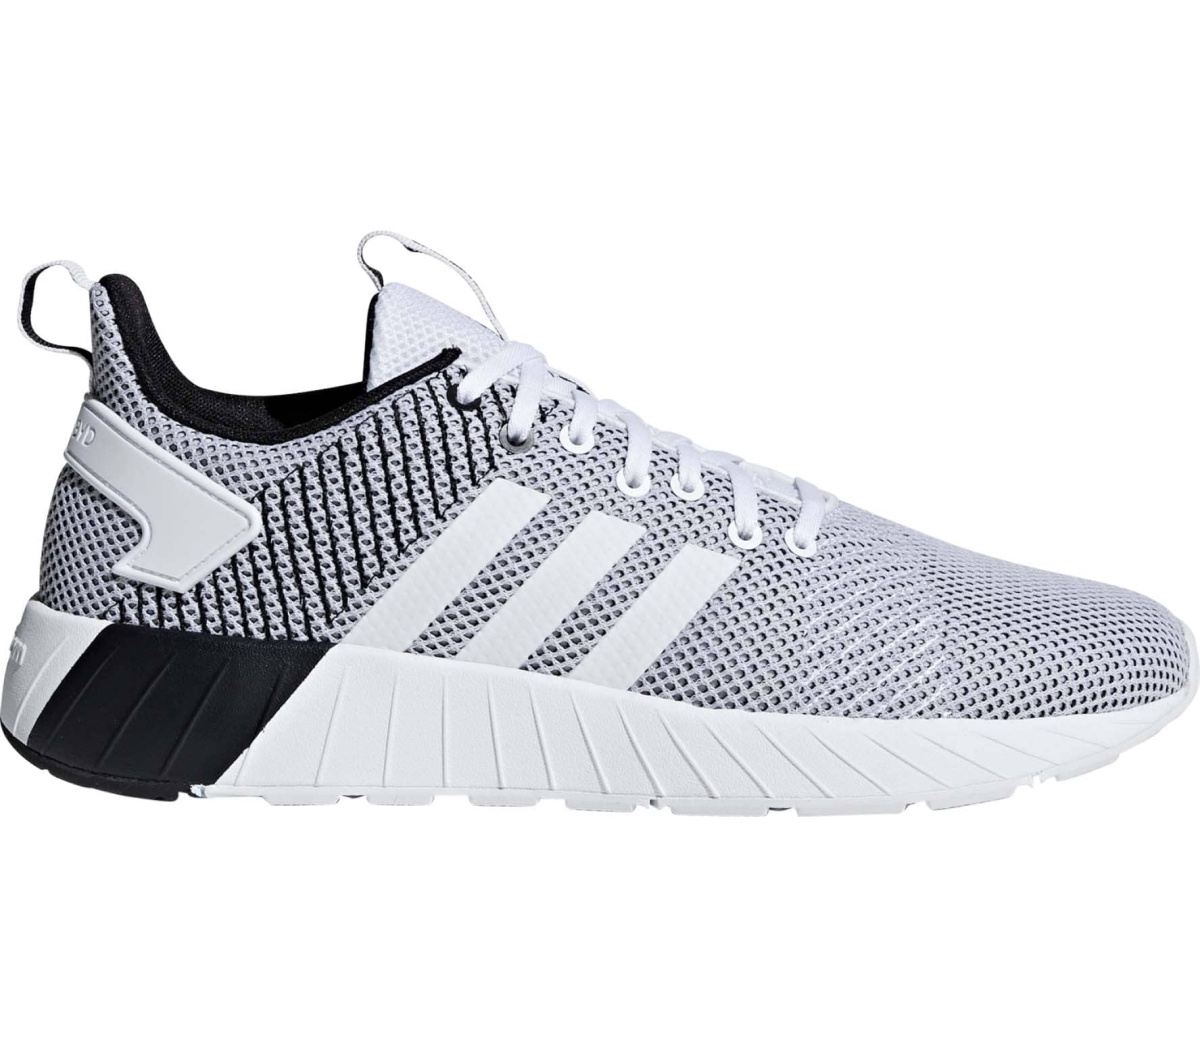 reputable site f17a5 a1b23 2040349-adidas-performance-questar-byd-sneaker-f35042.jpg